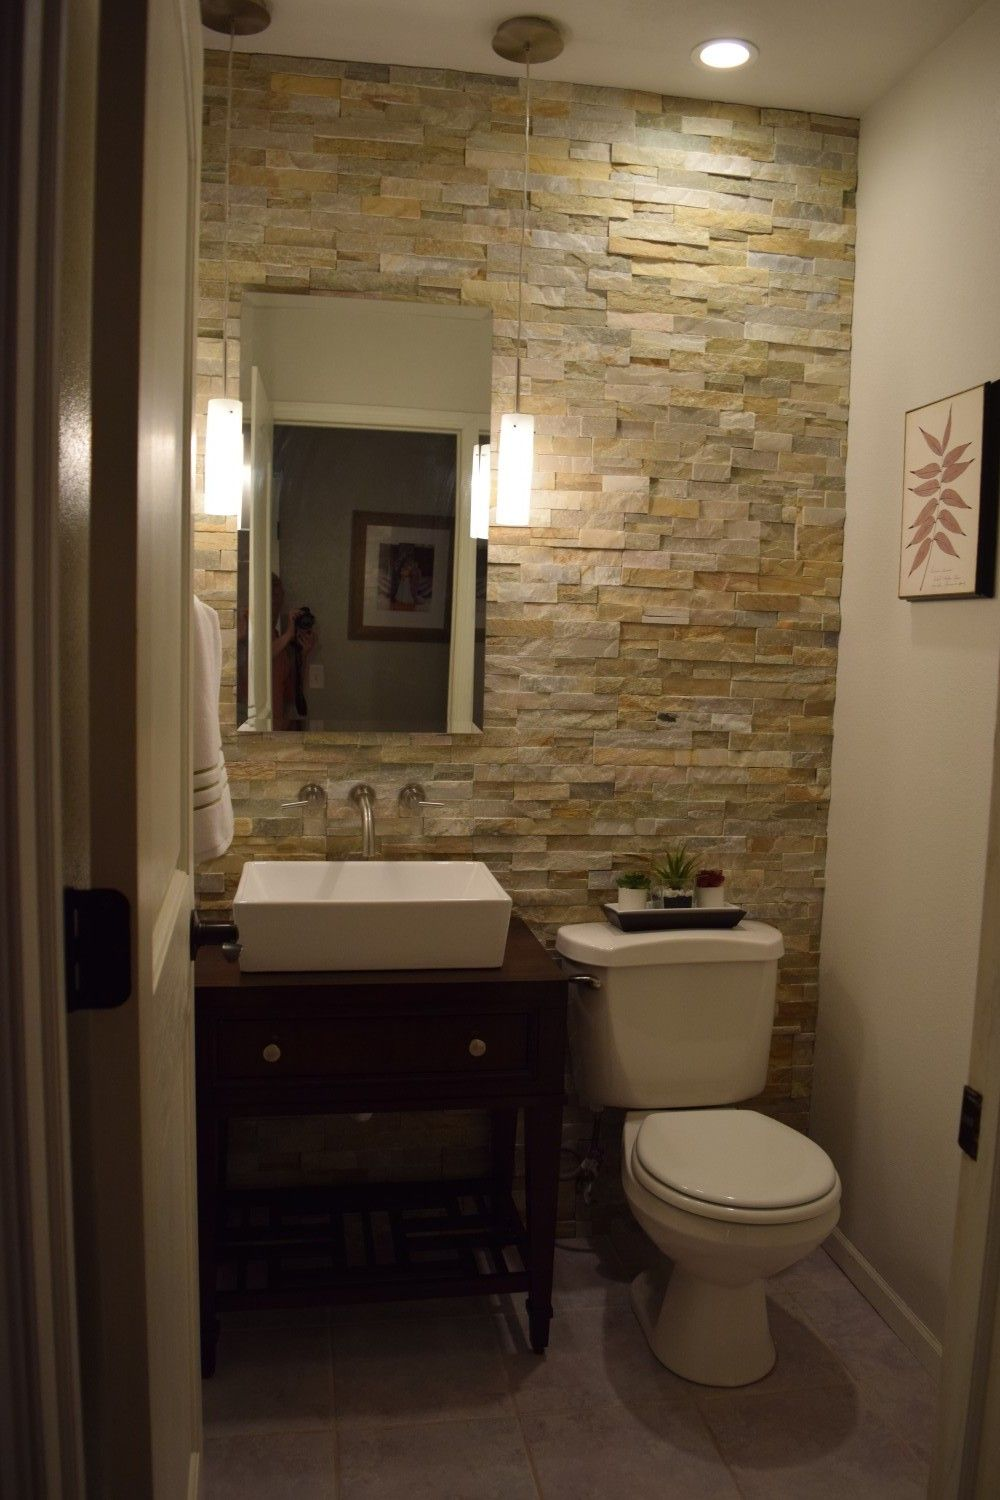 Houzz guest bathrooms - Our Article Feature For The Bathroom Remodel Came Out On Houzz Com Today